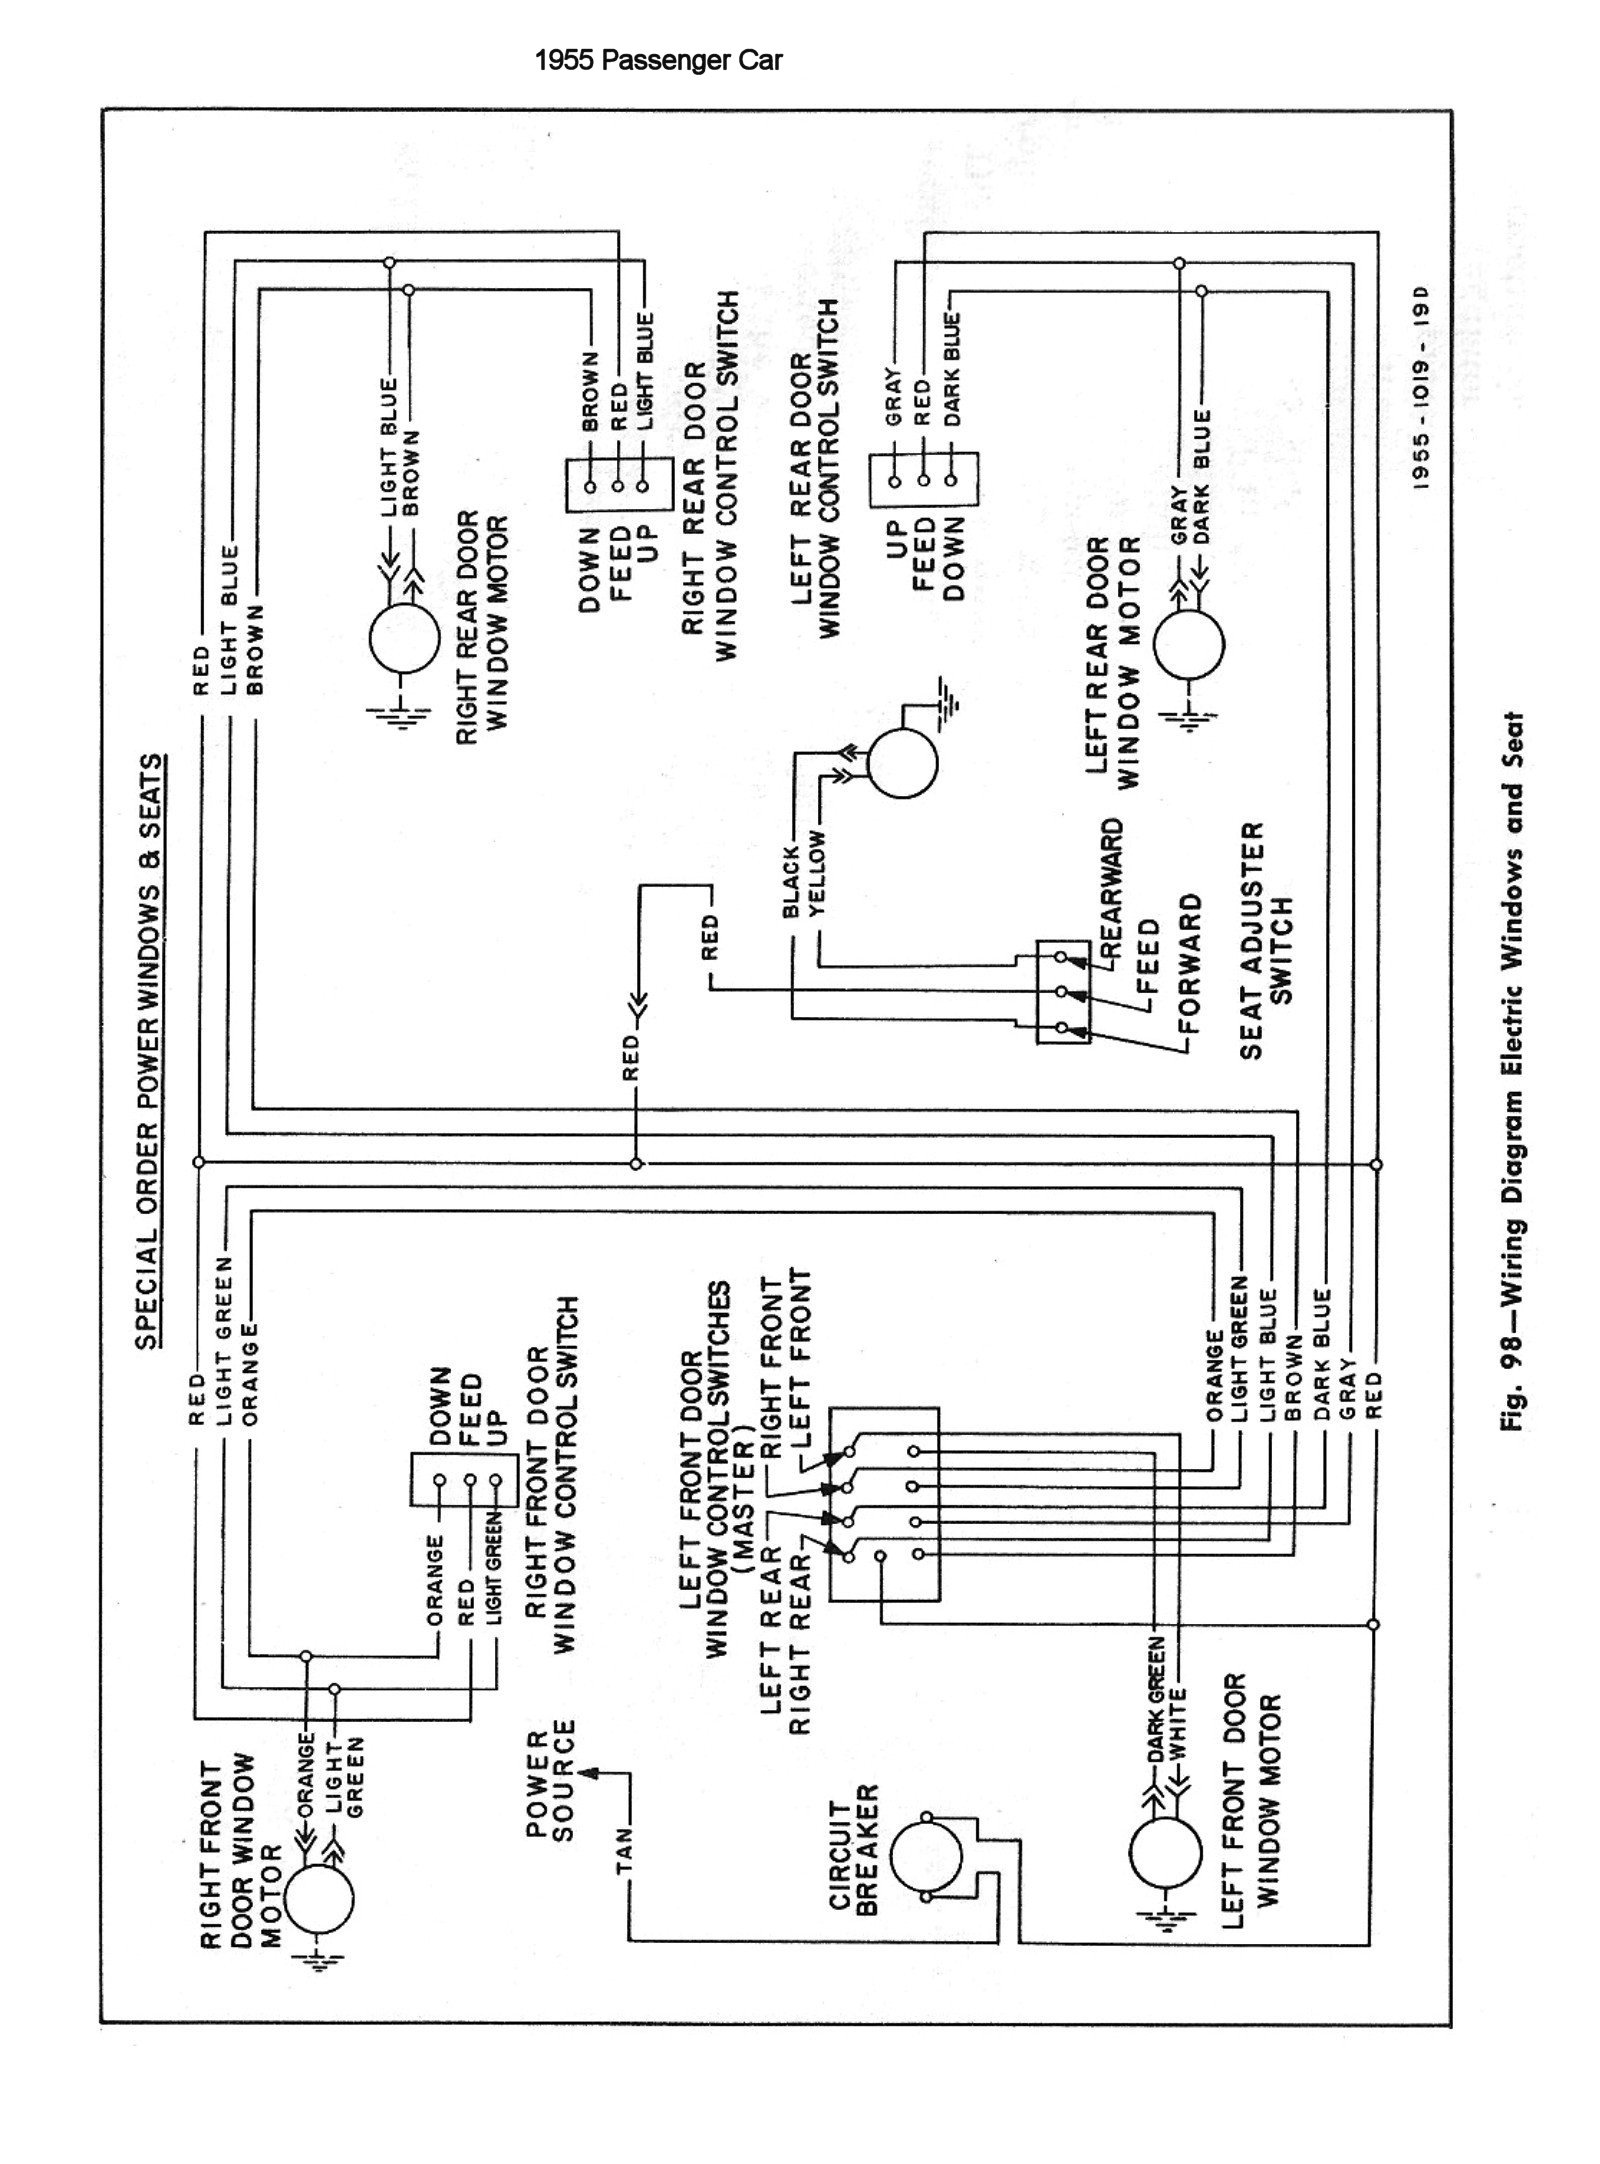 Diagram For 1972 Chevelle Wiring Get Free Image About Wiring Diagram